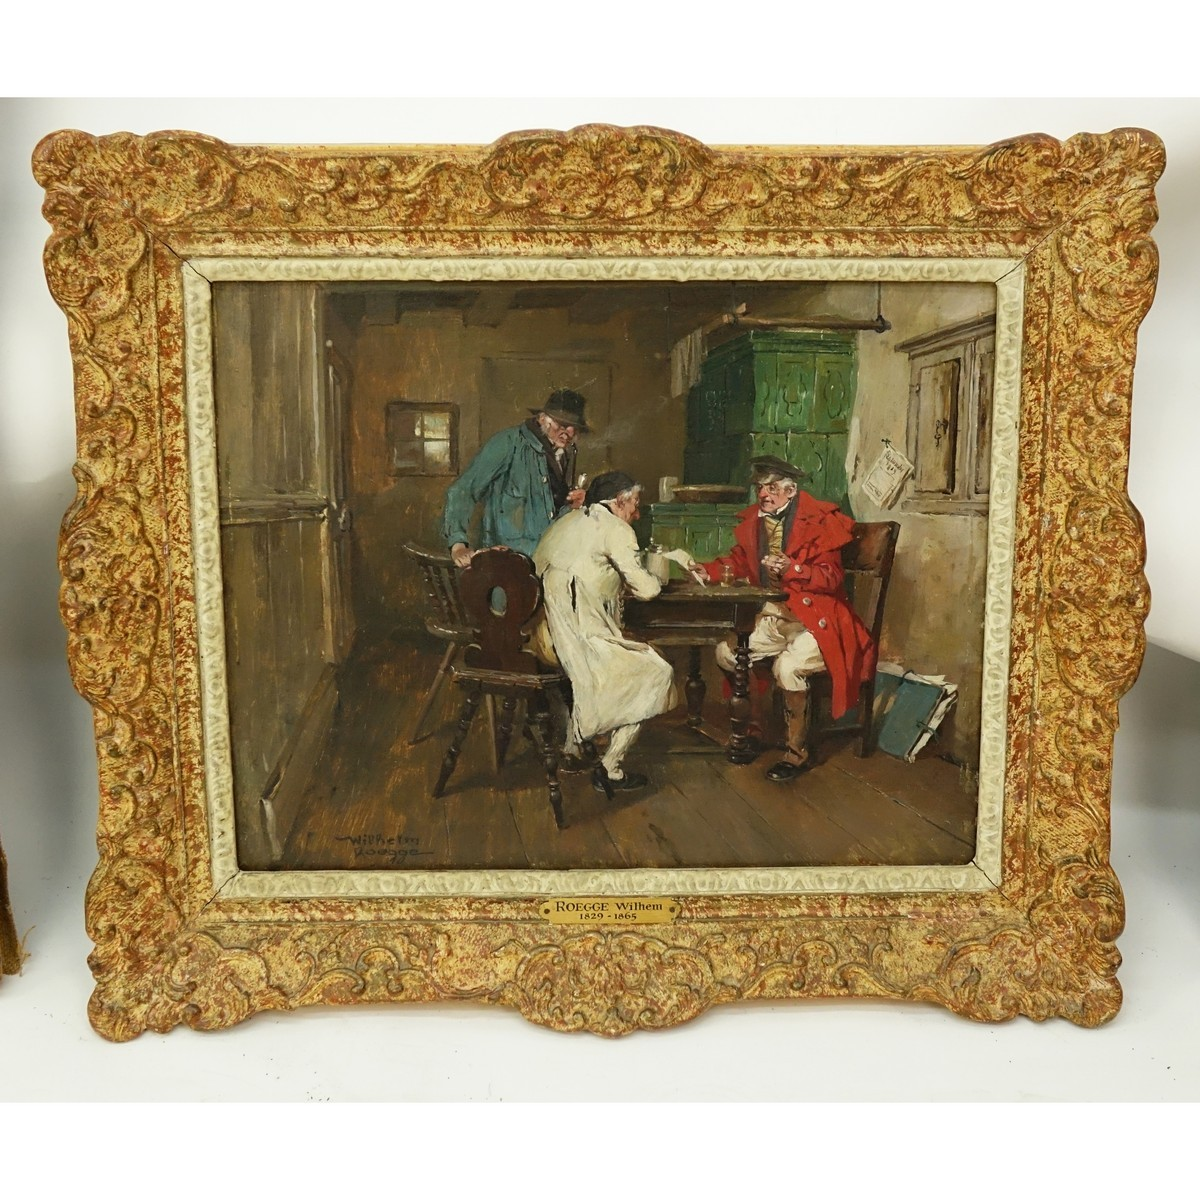 Wilhelm Roegge I, German  (1829 - 1908) Oil on Board, Interior Scene with Figures, Signed Lower Lef